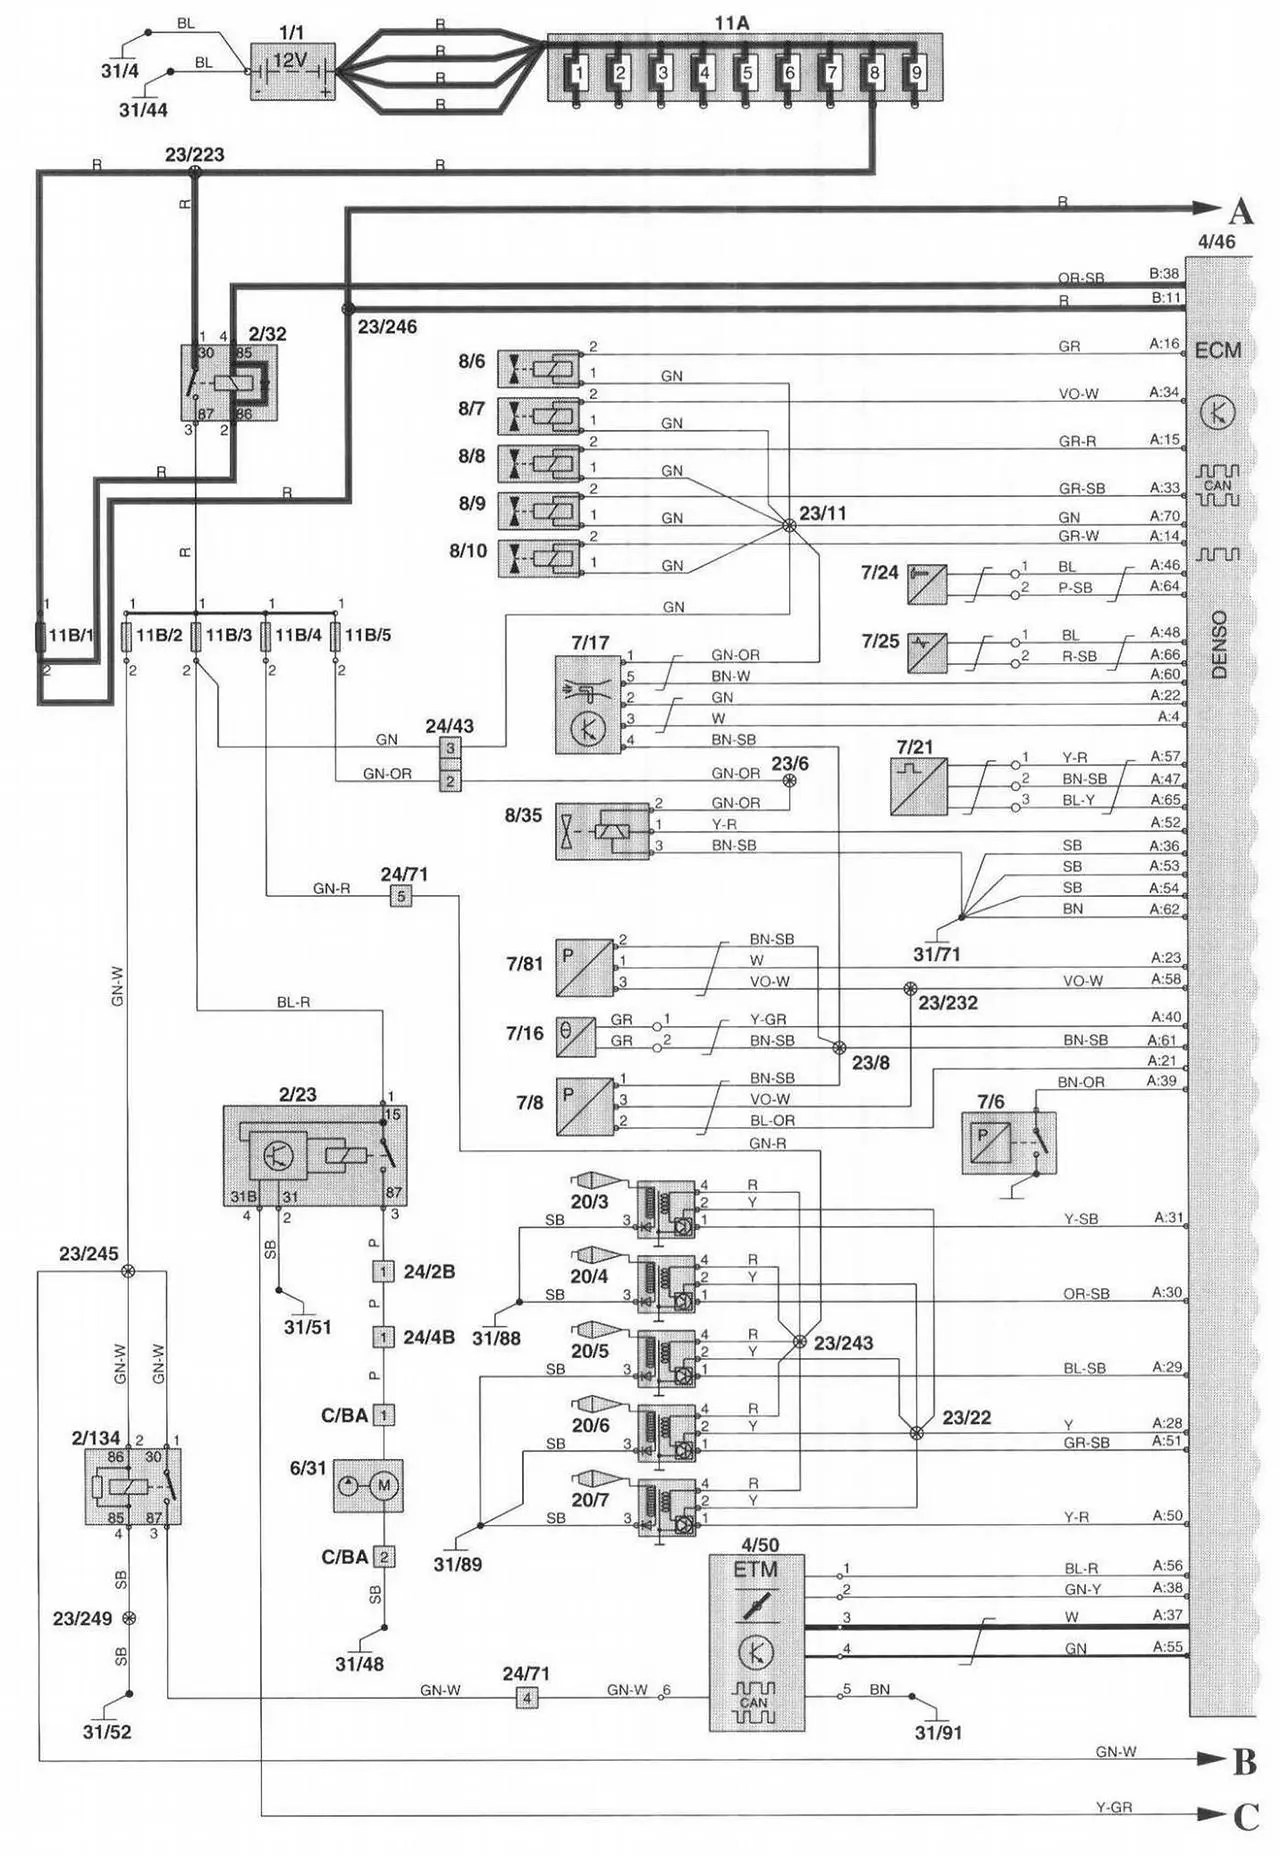 hight resolution of 2003 volvo fuse diagram wiring diagram expert 2005 volvo v70 wiring diagram 2003 volvo s40 fuse